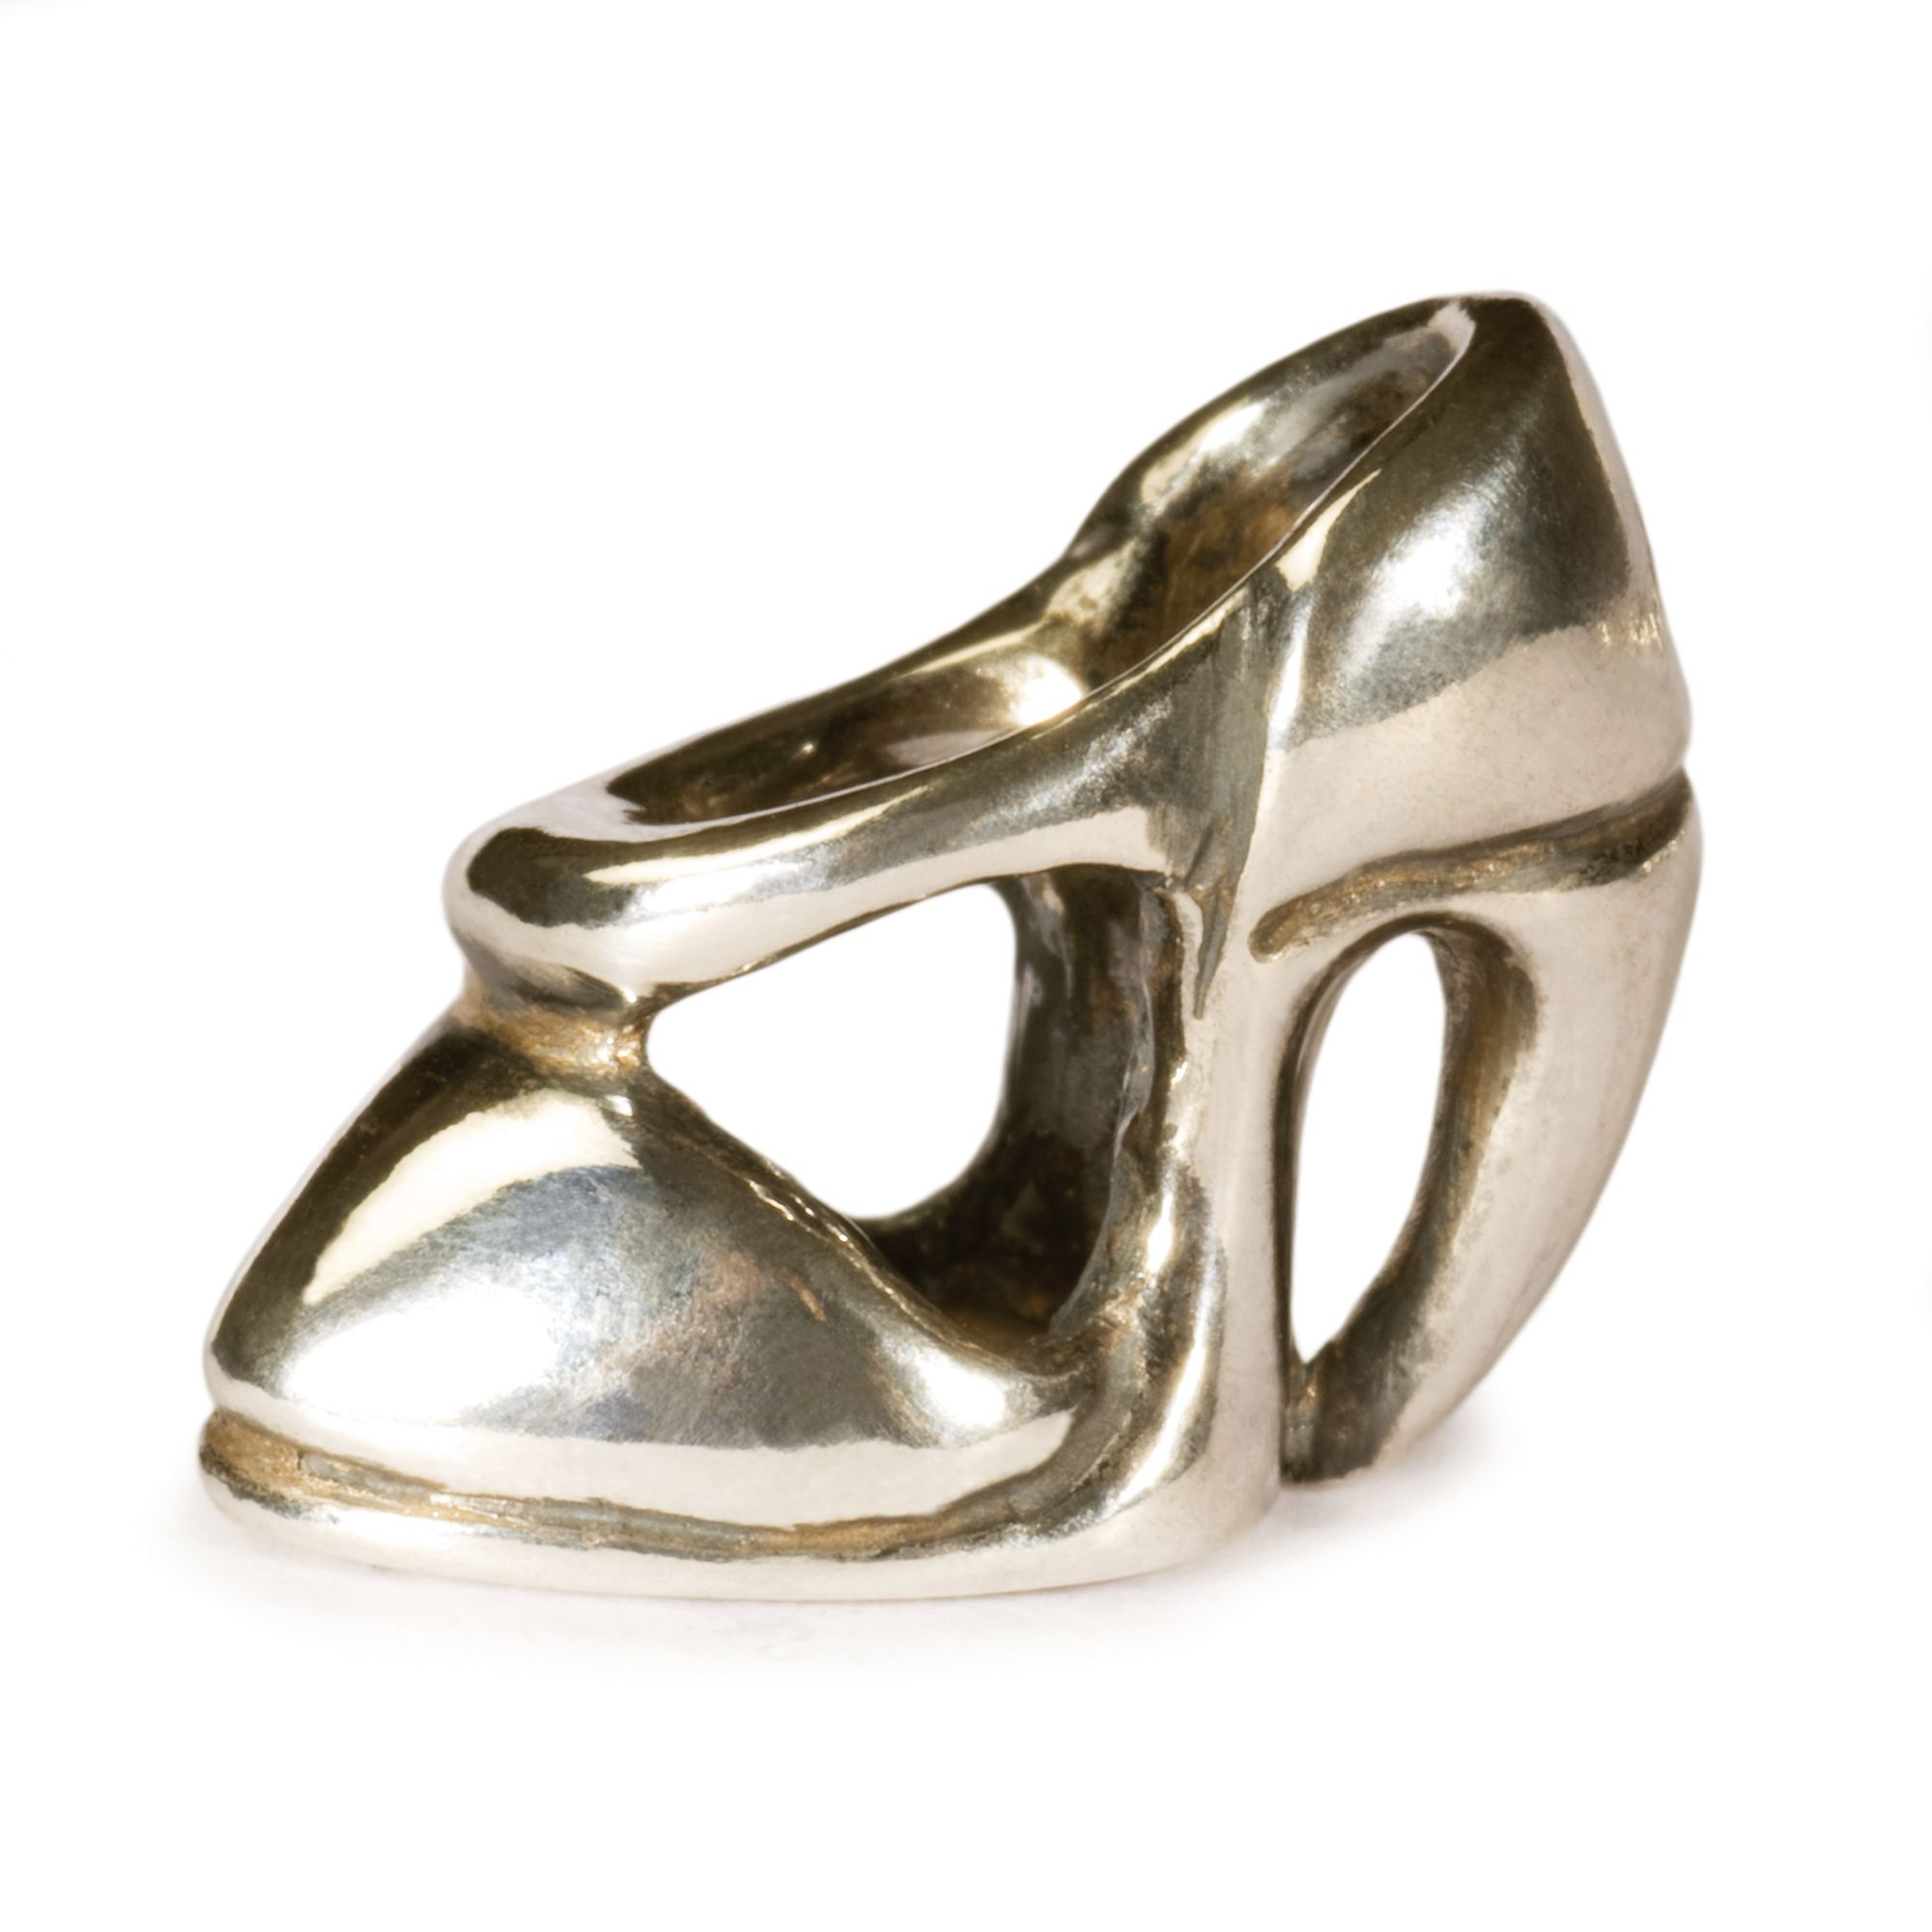 High Heel silver charm bead